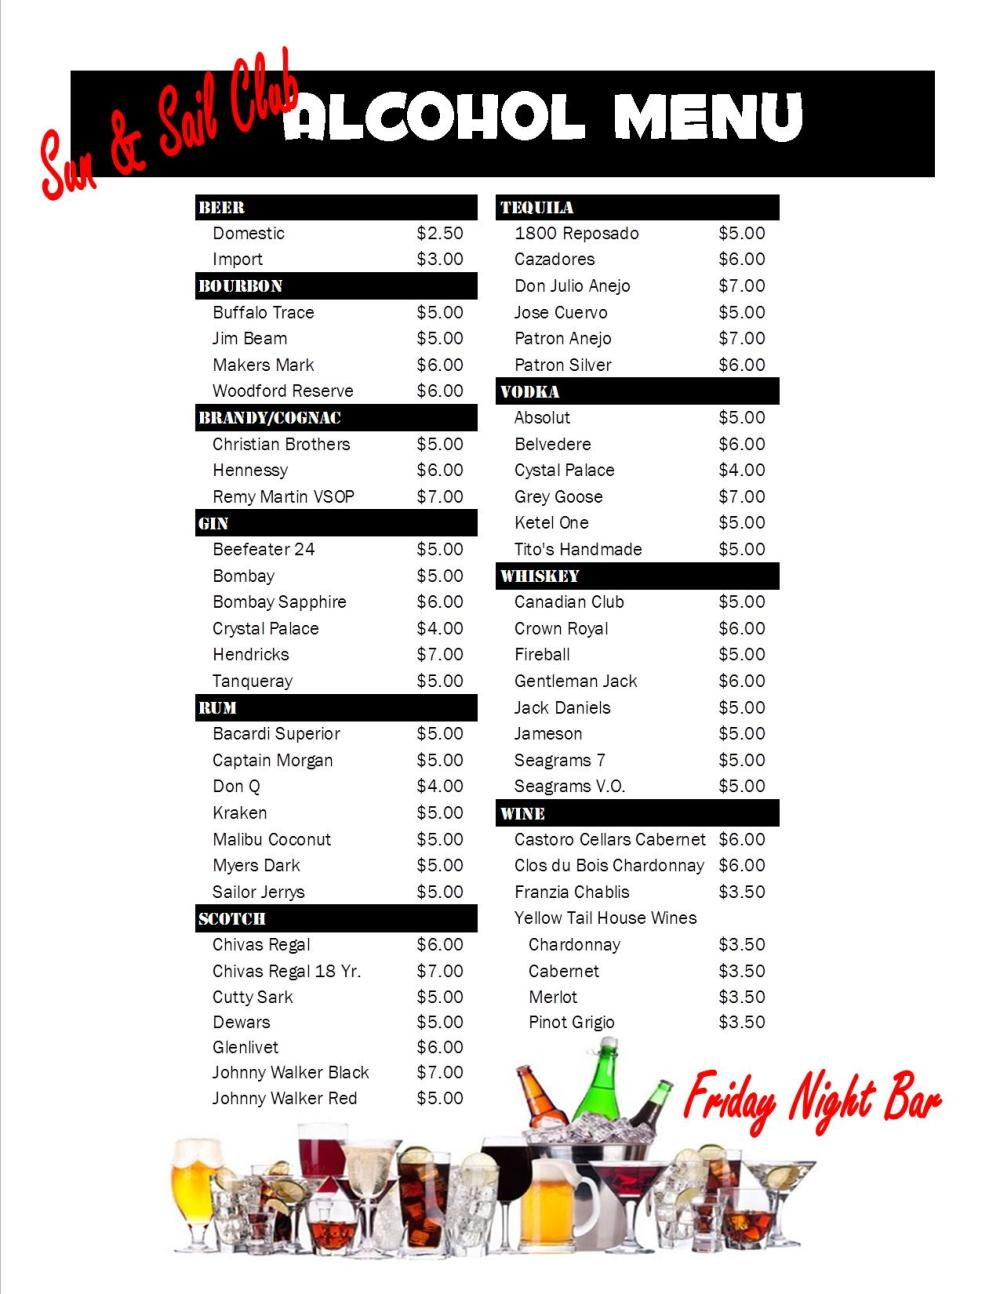 New Bar Prices by Alcohol